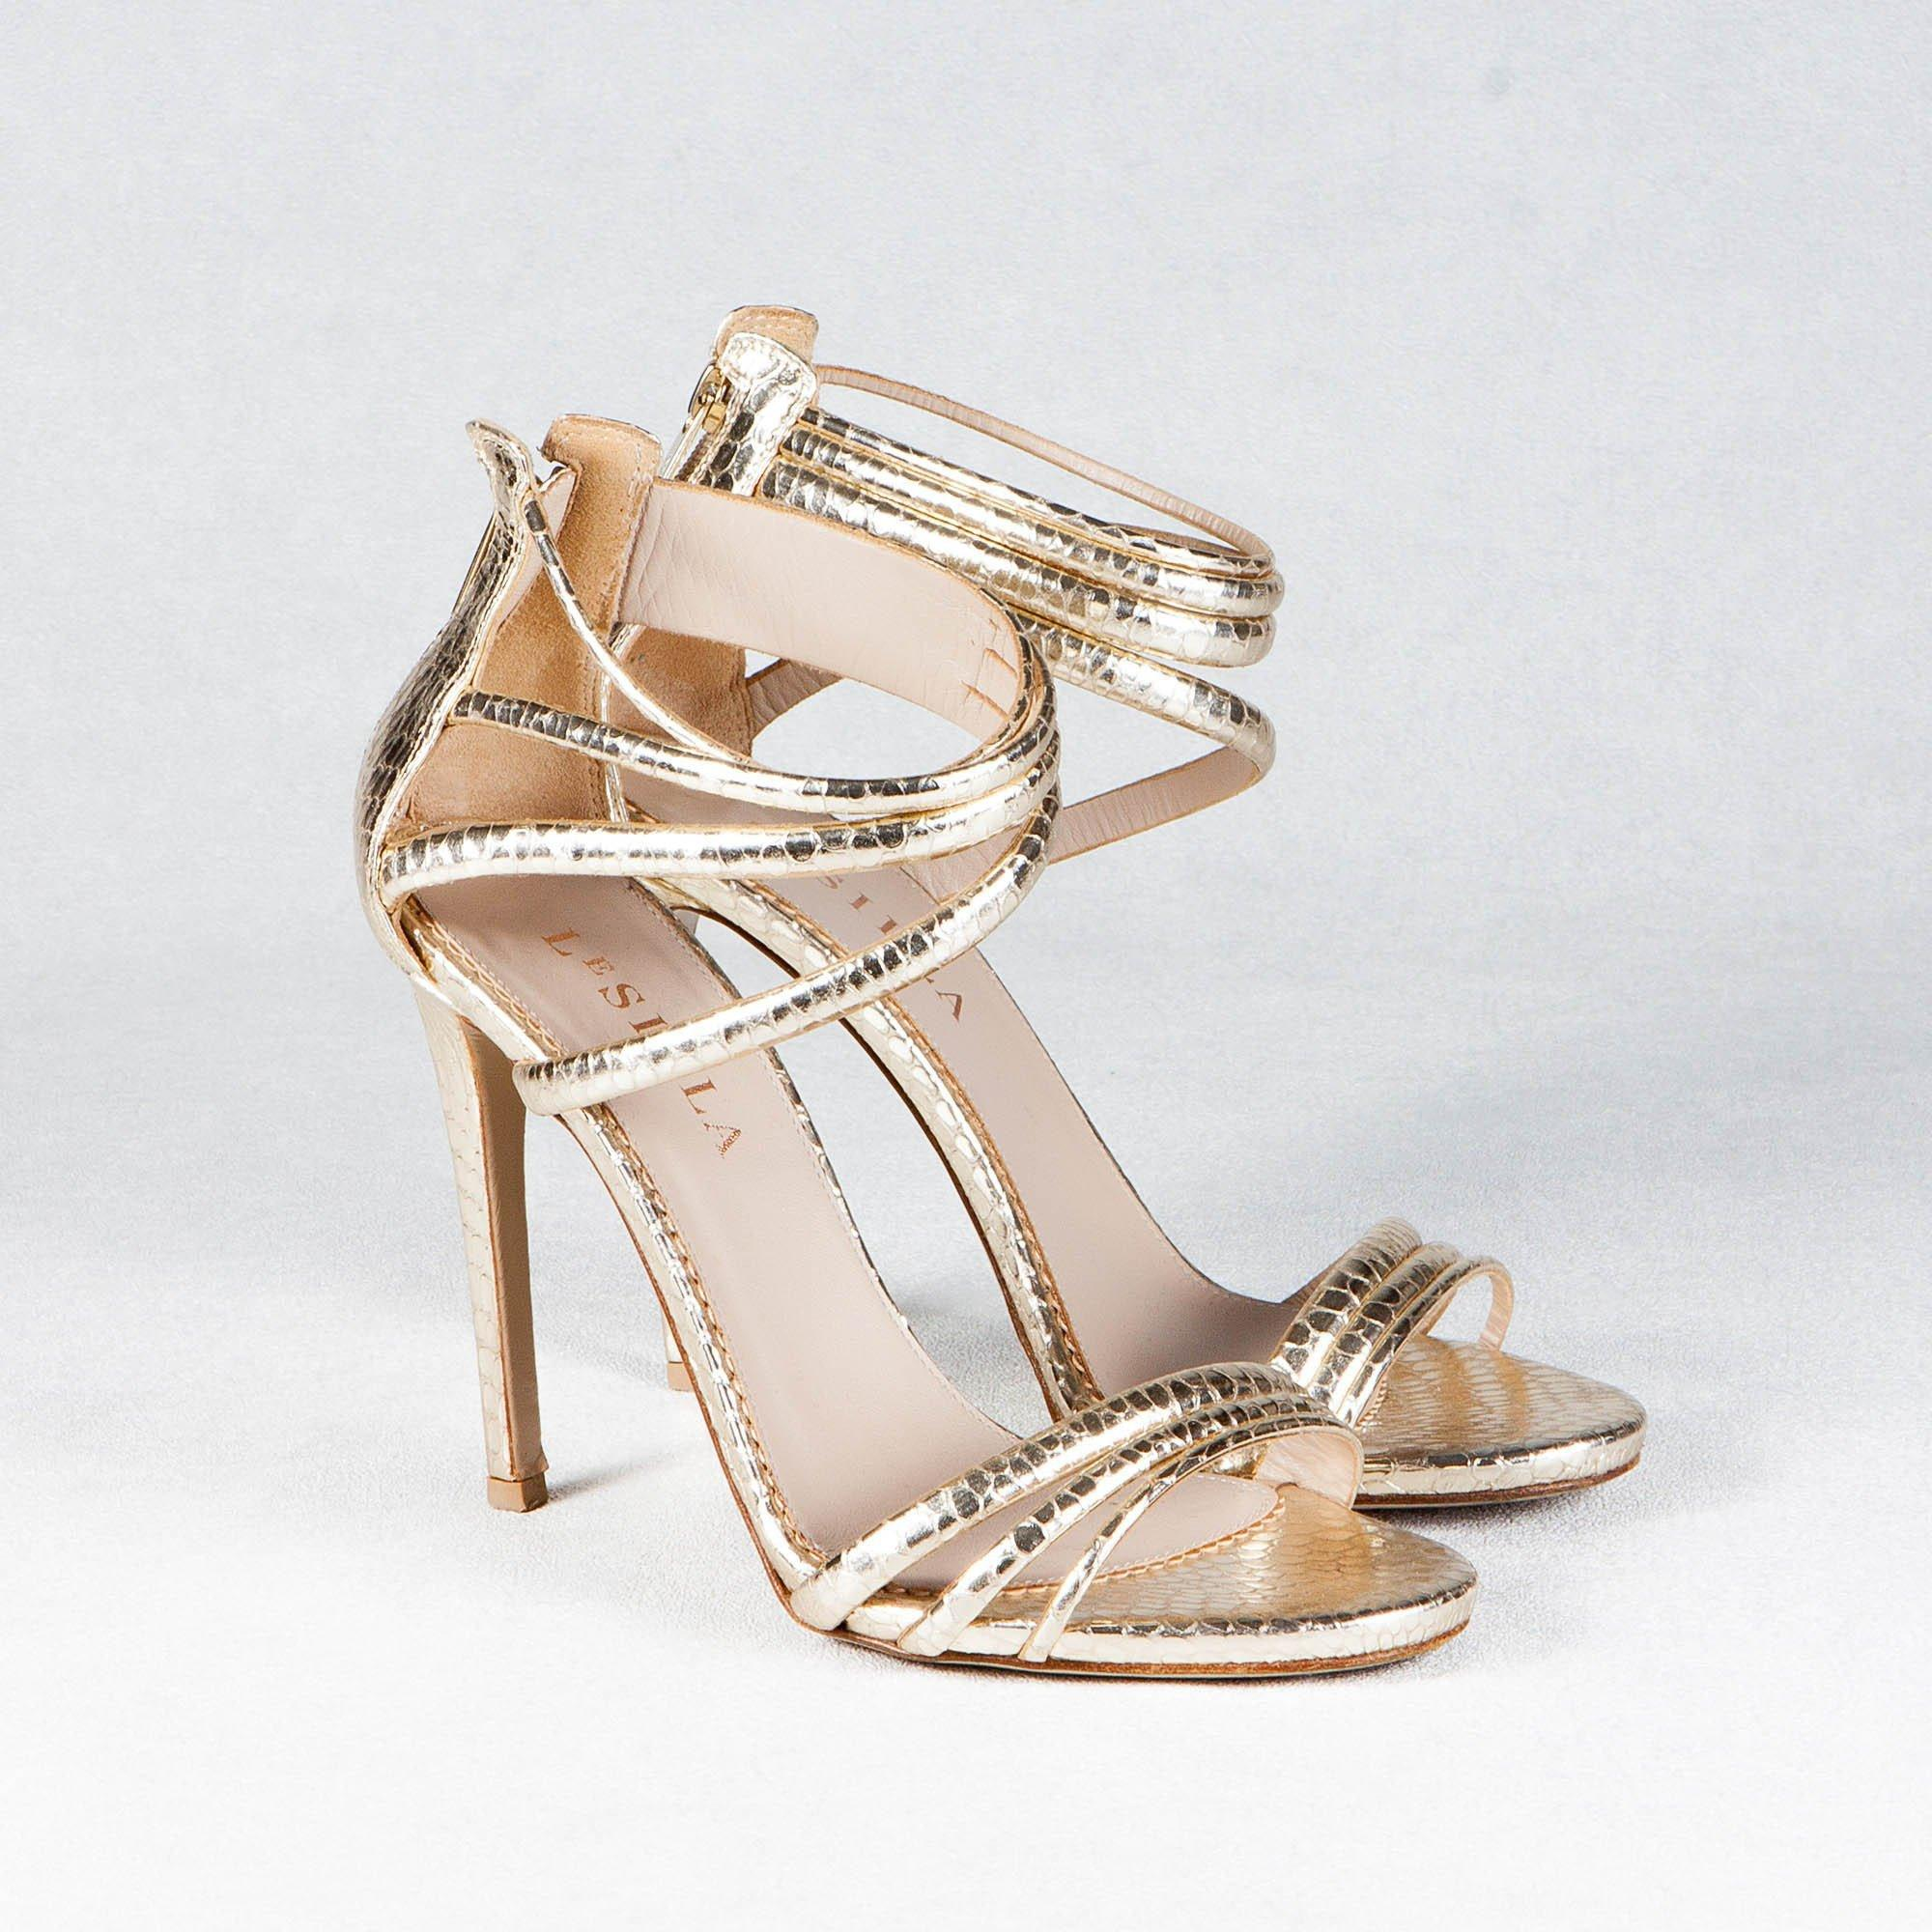 Pre-owned - Lizard sandals Le Silla npZrCPUeUI